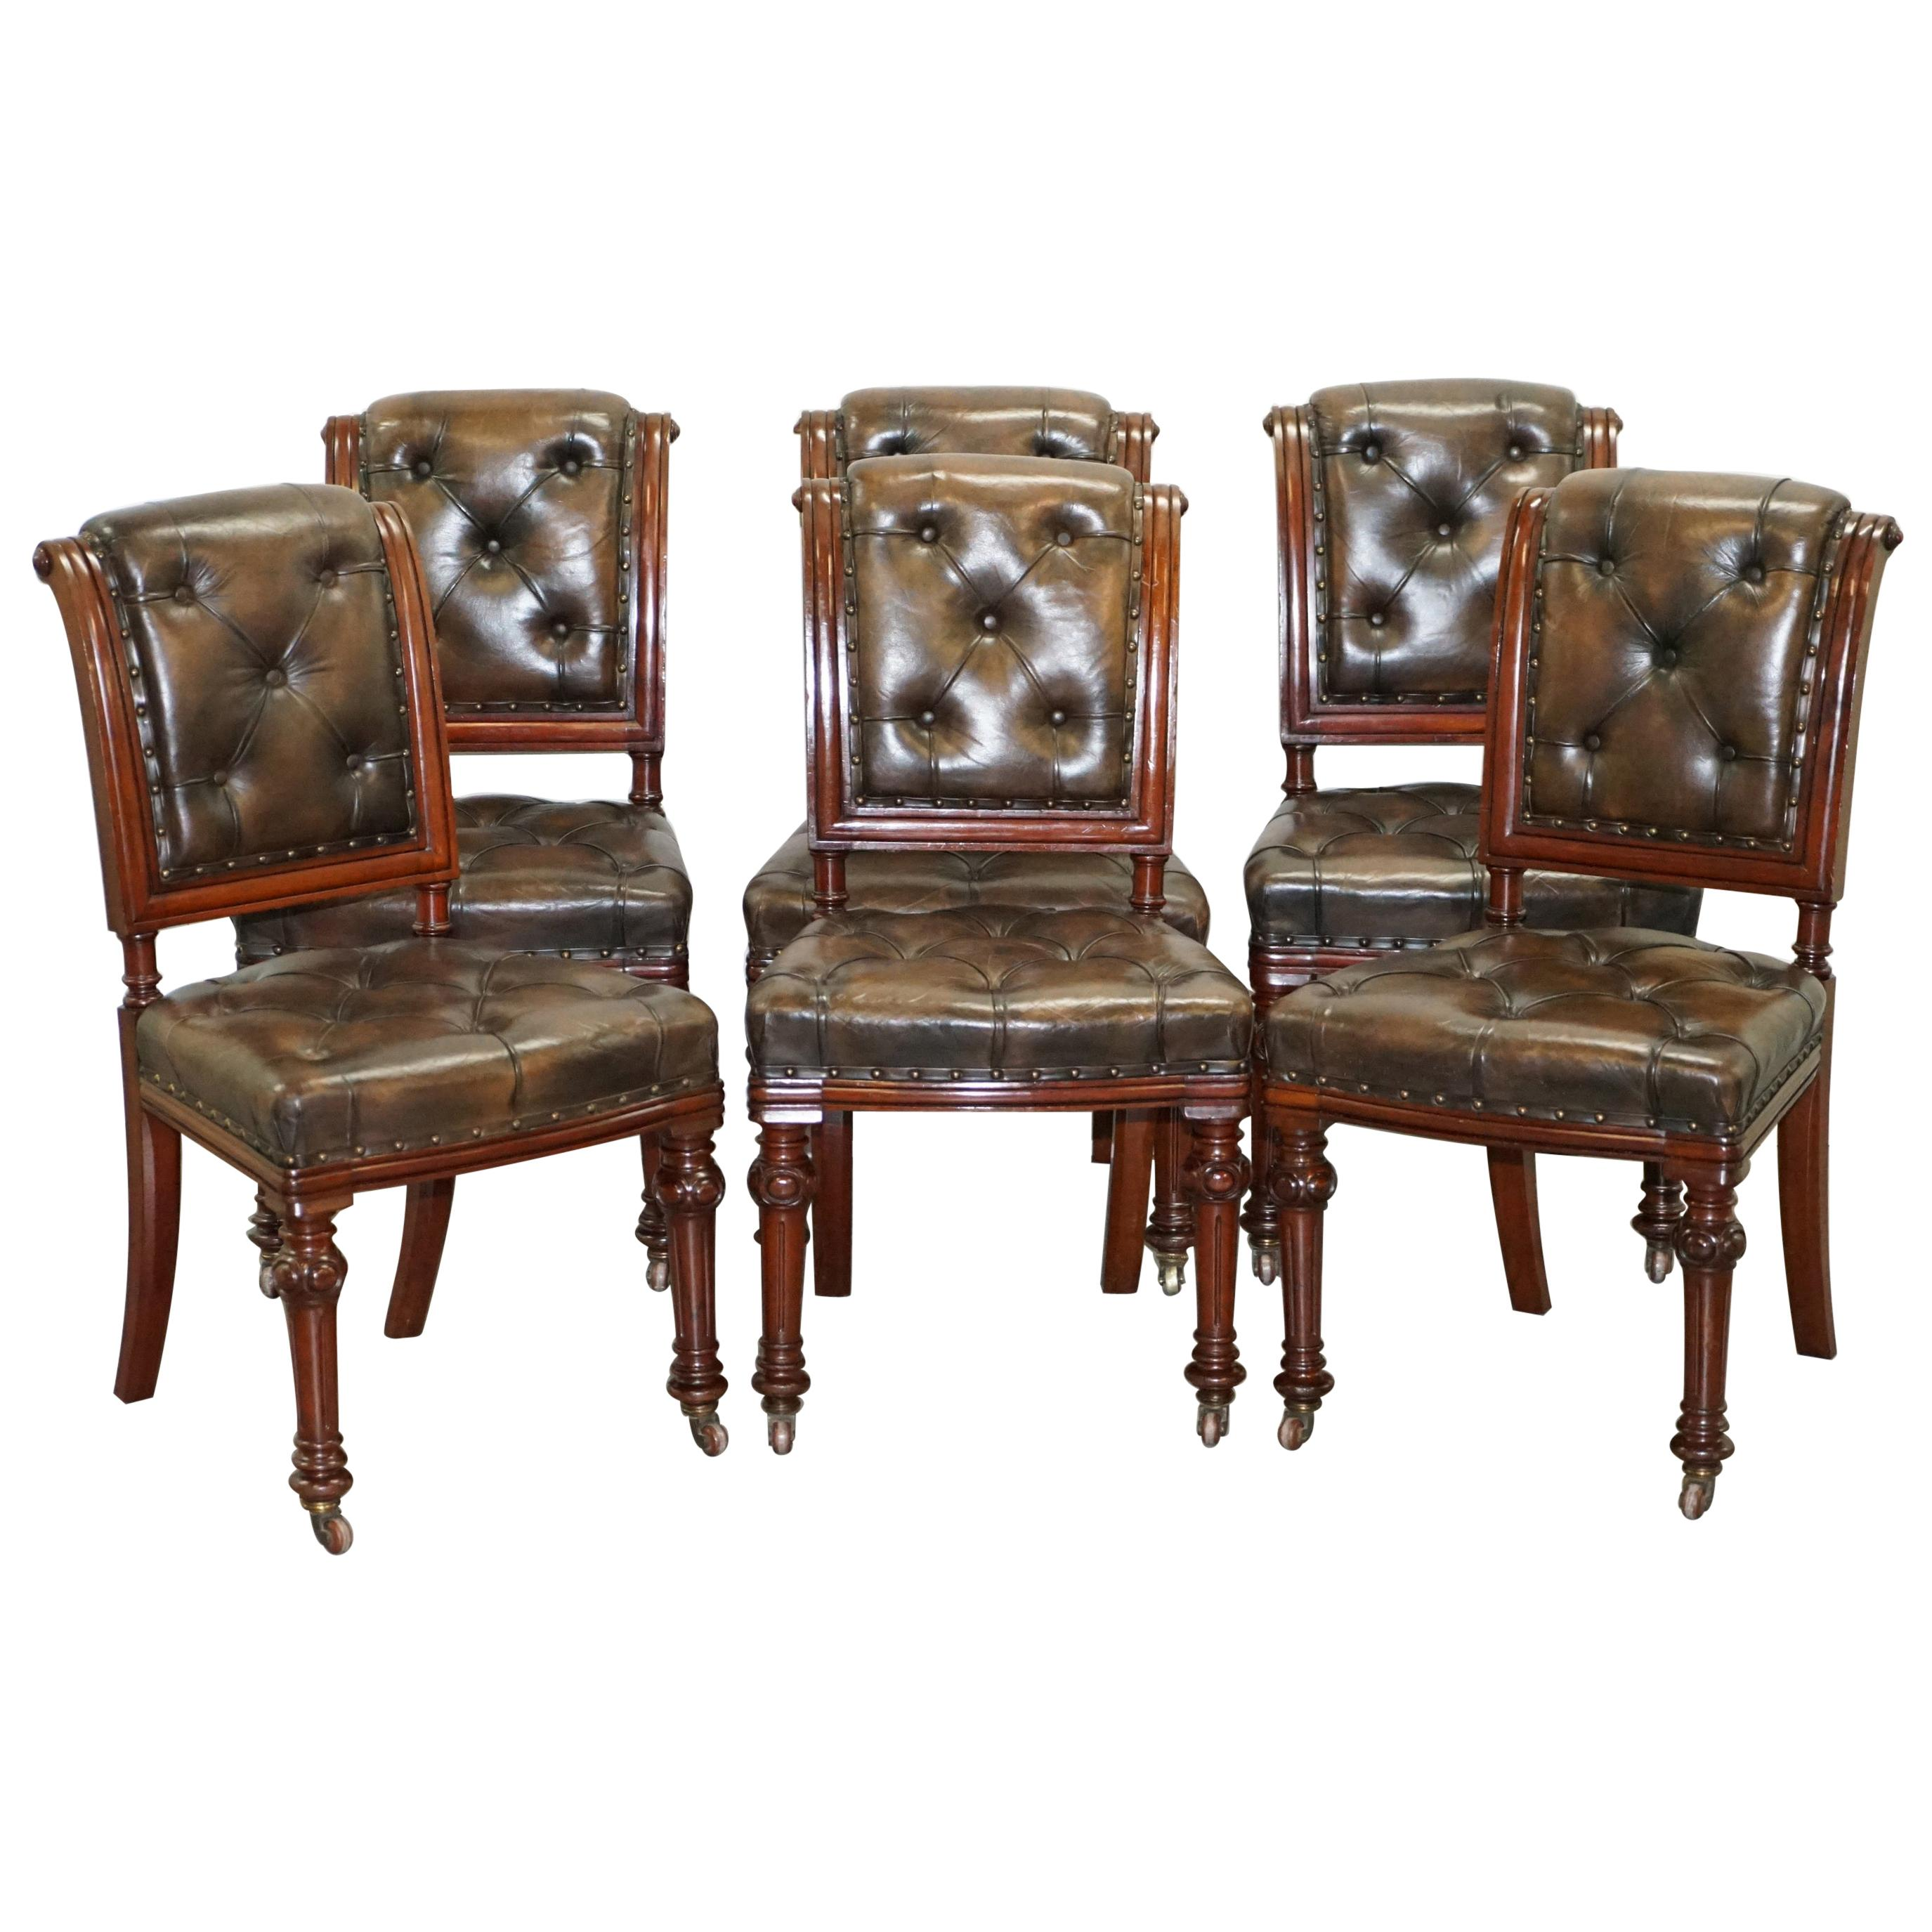 Suite of 6 John Crowe & Sons Victorian Chesterfield Brown Leather Dining Chairs